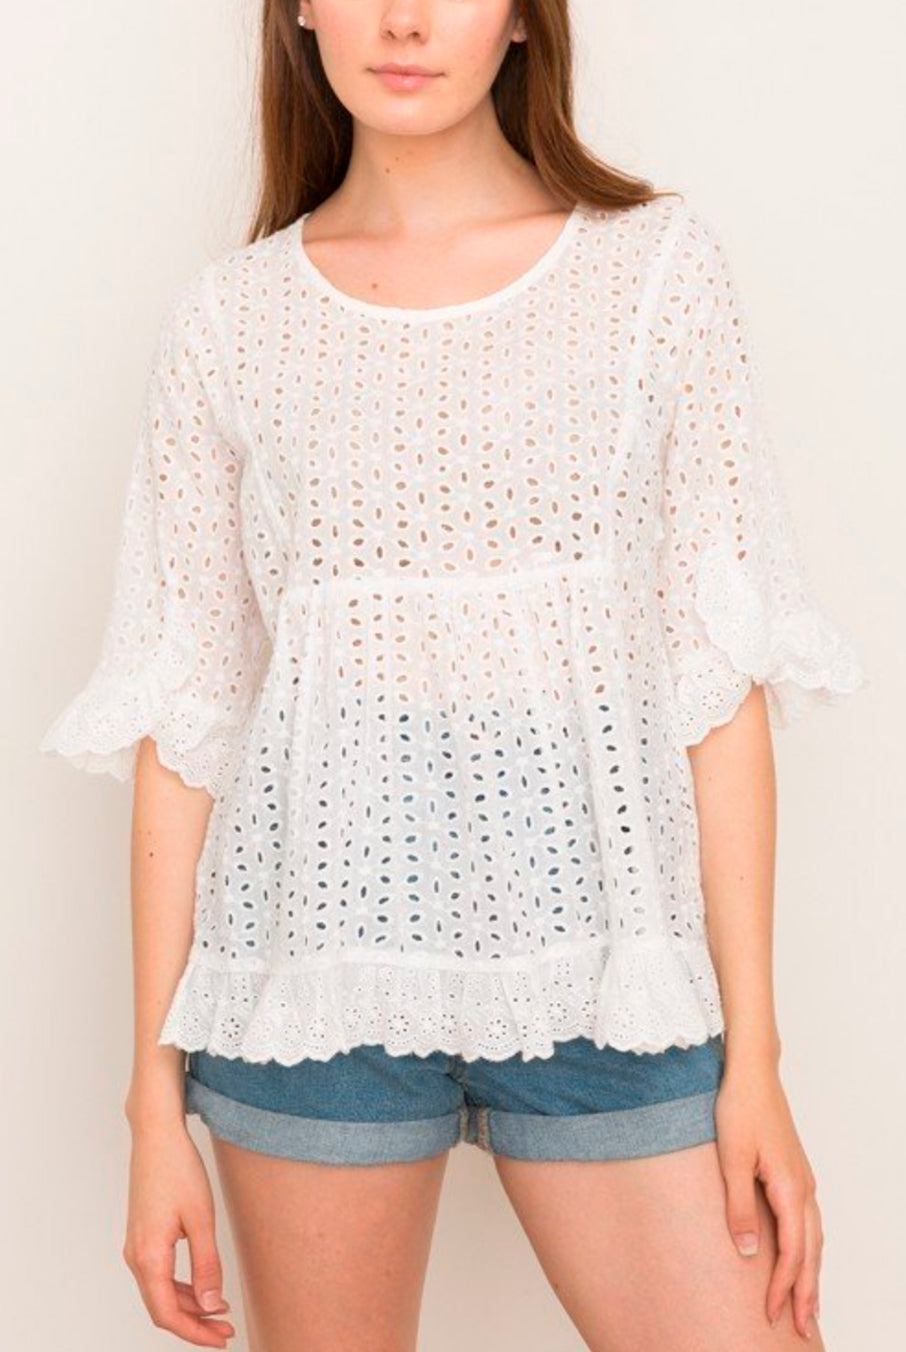 bd14b11455fd7 ... Mystree White Cotton Lola Eyelet Ruffle Top - Hourglass Boutique - 2 ...